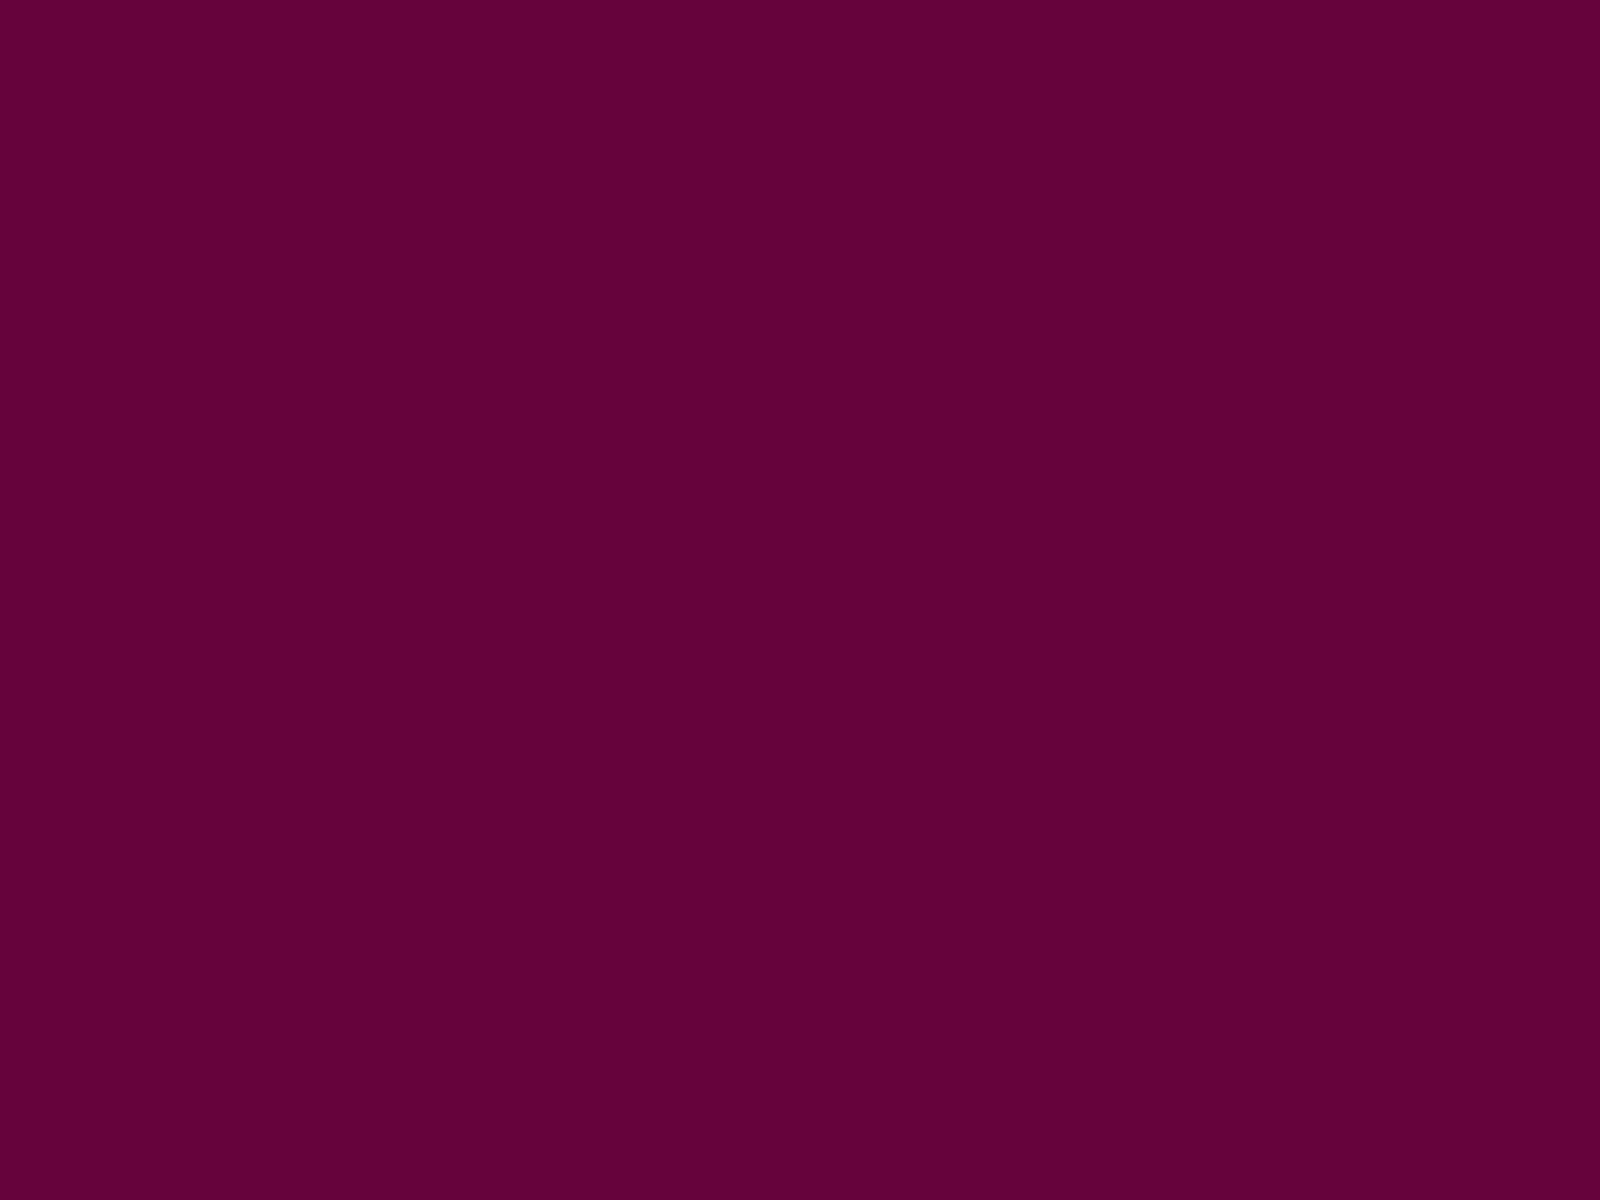 1600x1200 Tyrian Purple Solid Color Background